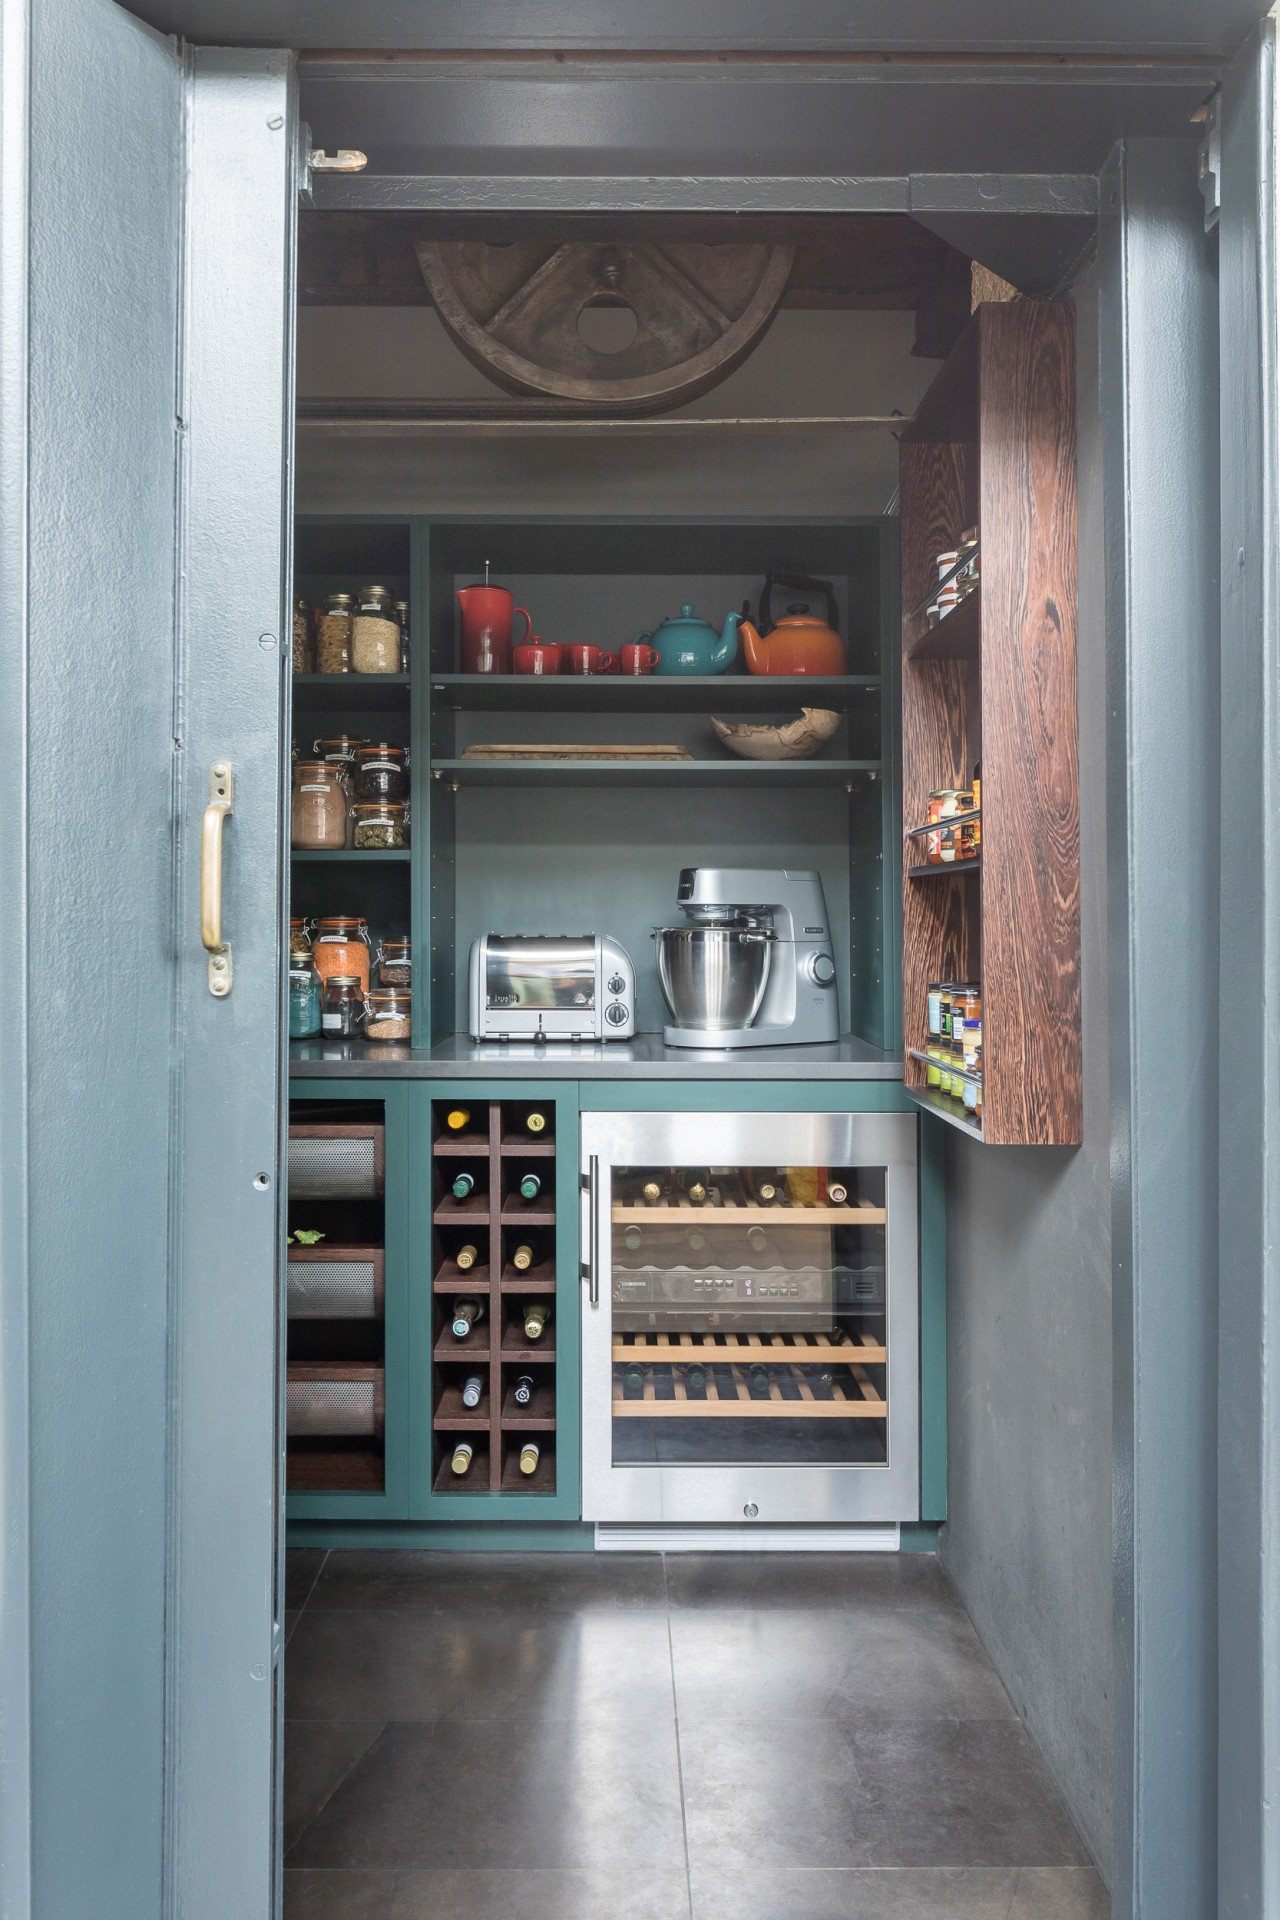 An old industrial lift was repurposed for the